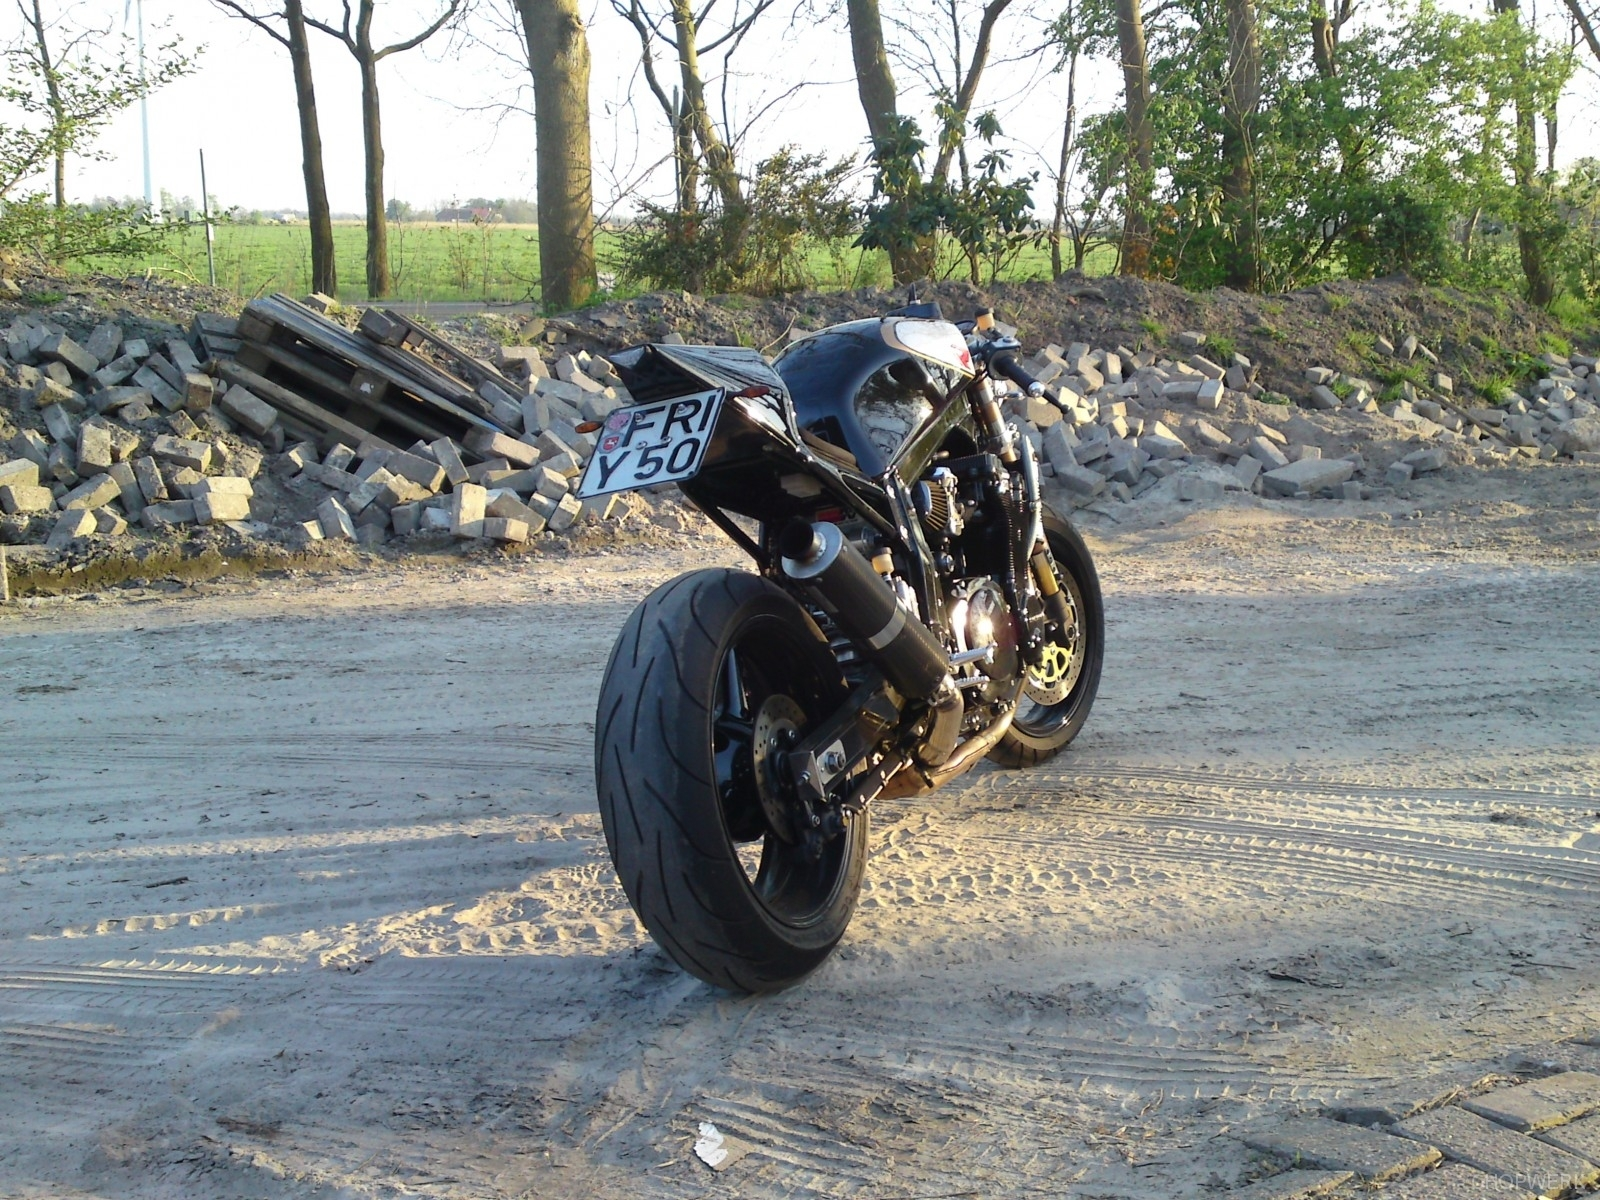 GSX-R-1100-caferacer-4